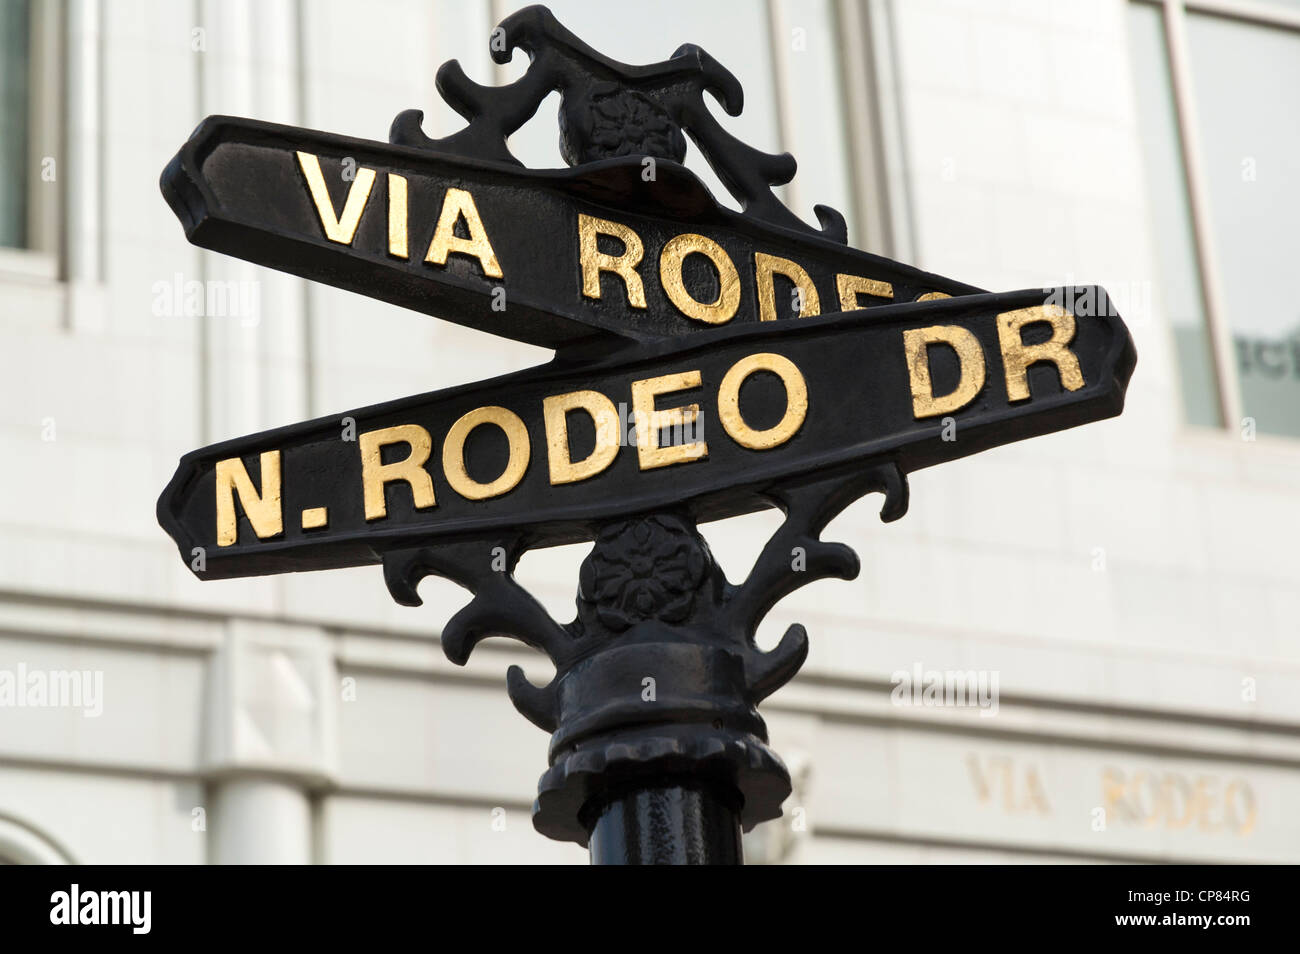 Rodeo Drive, street sign post, Beverly Hills, Los Angeles, California, USA - Stock Image